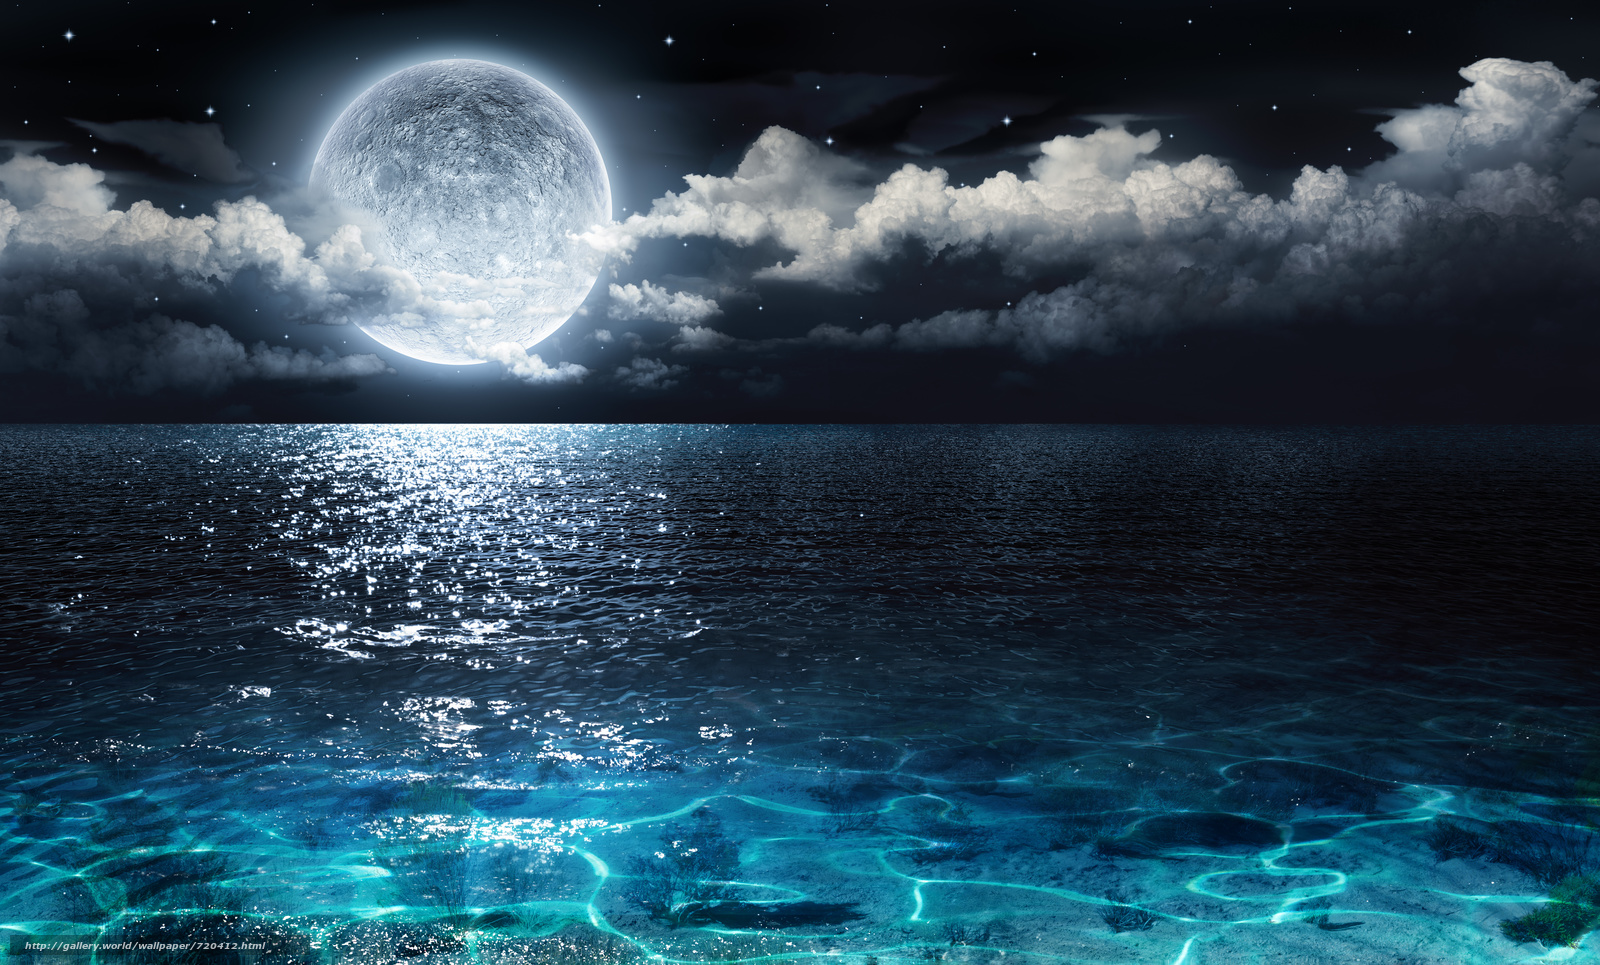 moon, ocean, night